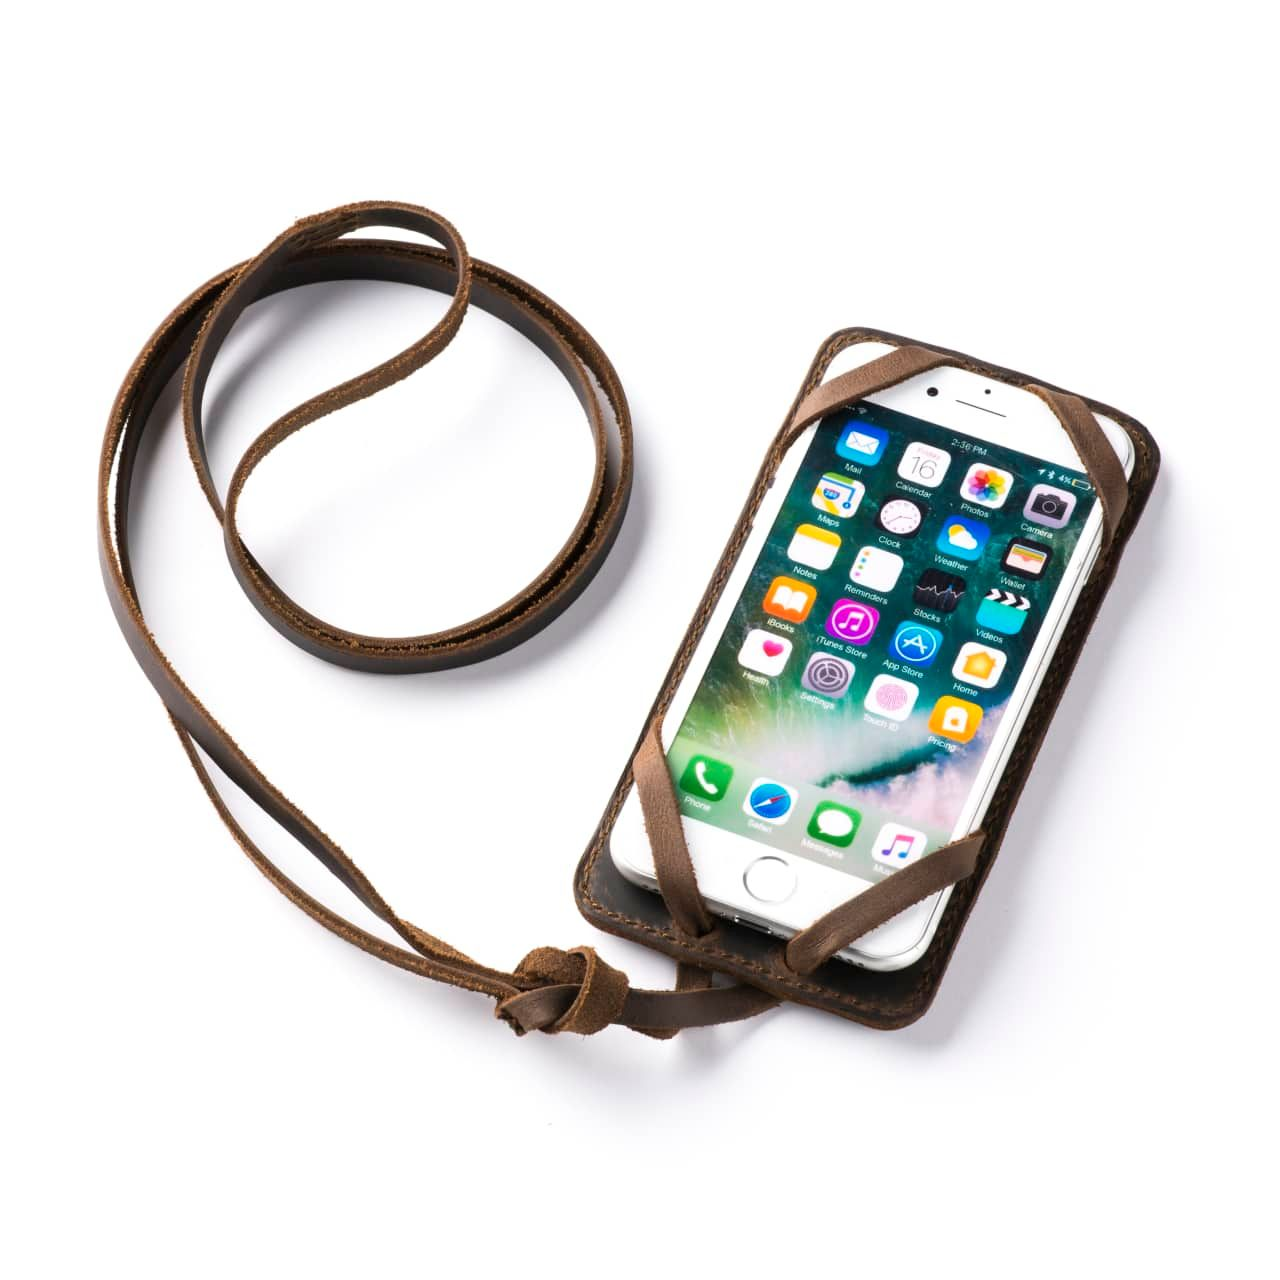 Leather iPhone 8 Case in Color Dark Coffee Brown with the Lanyard attached front angle with phone in the case